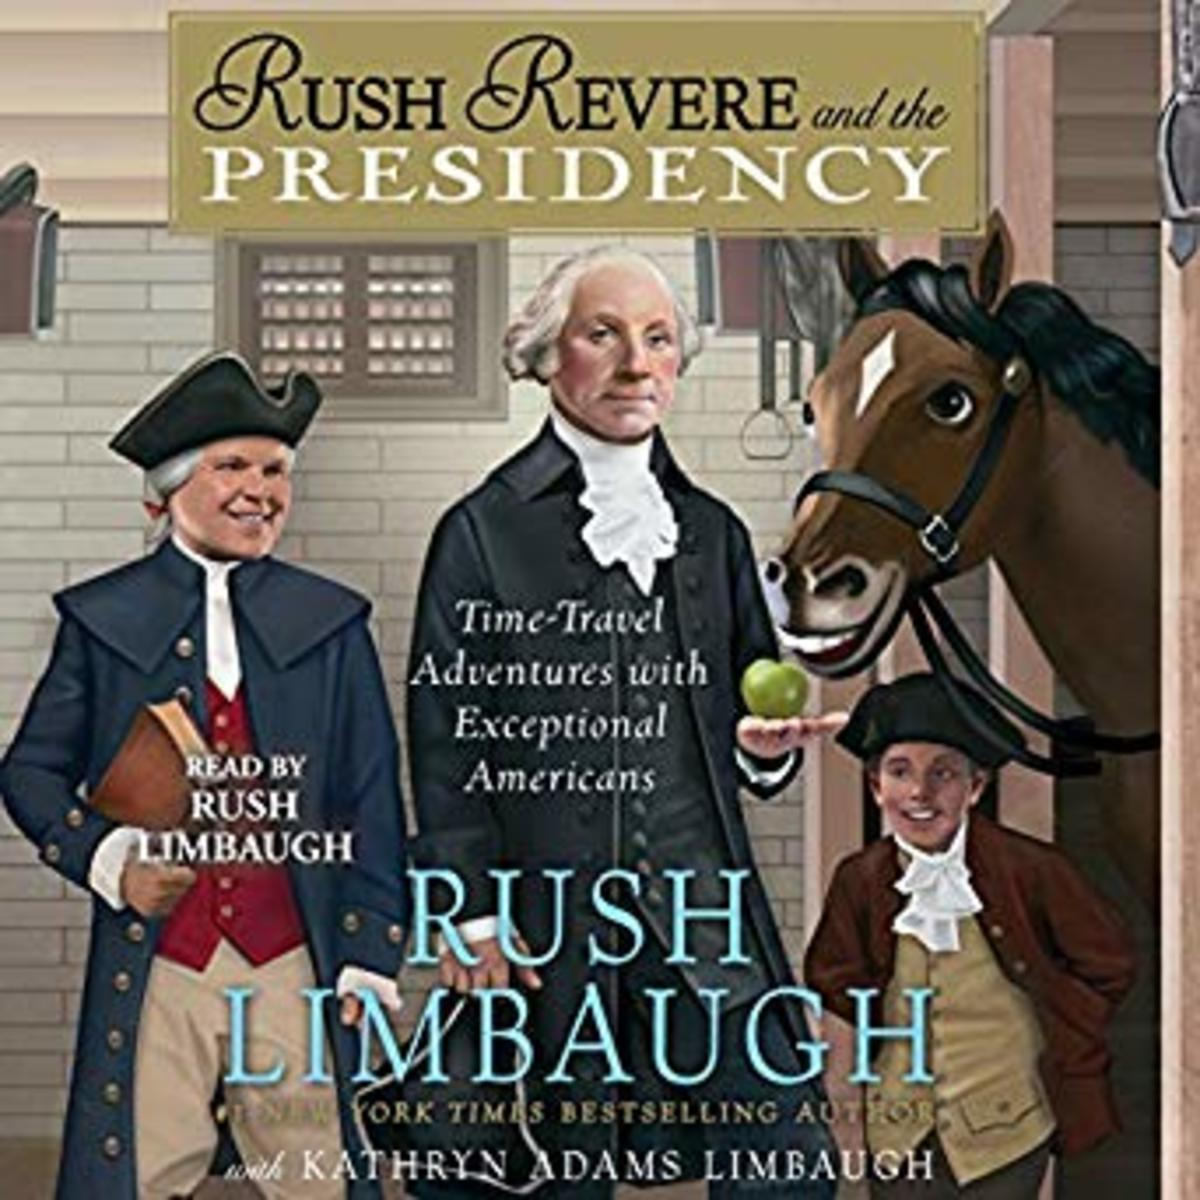 Rush Revere and the Presidency by Rush Limbaugh (We love the audio version!)